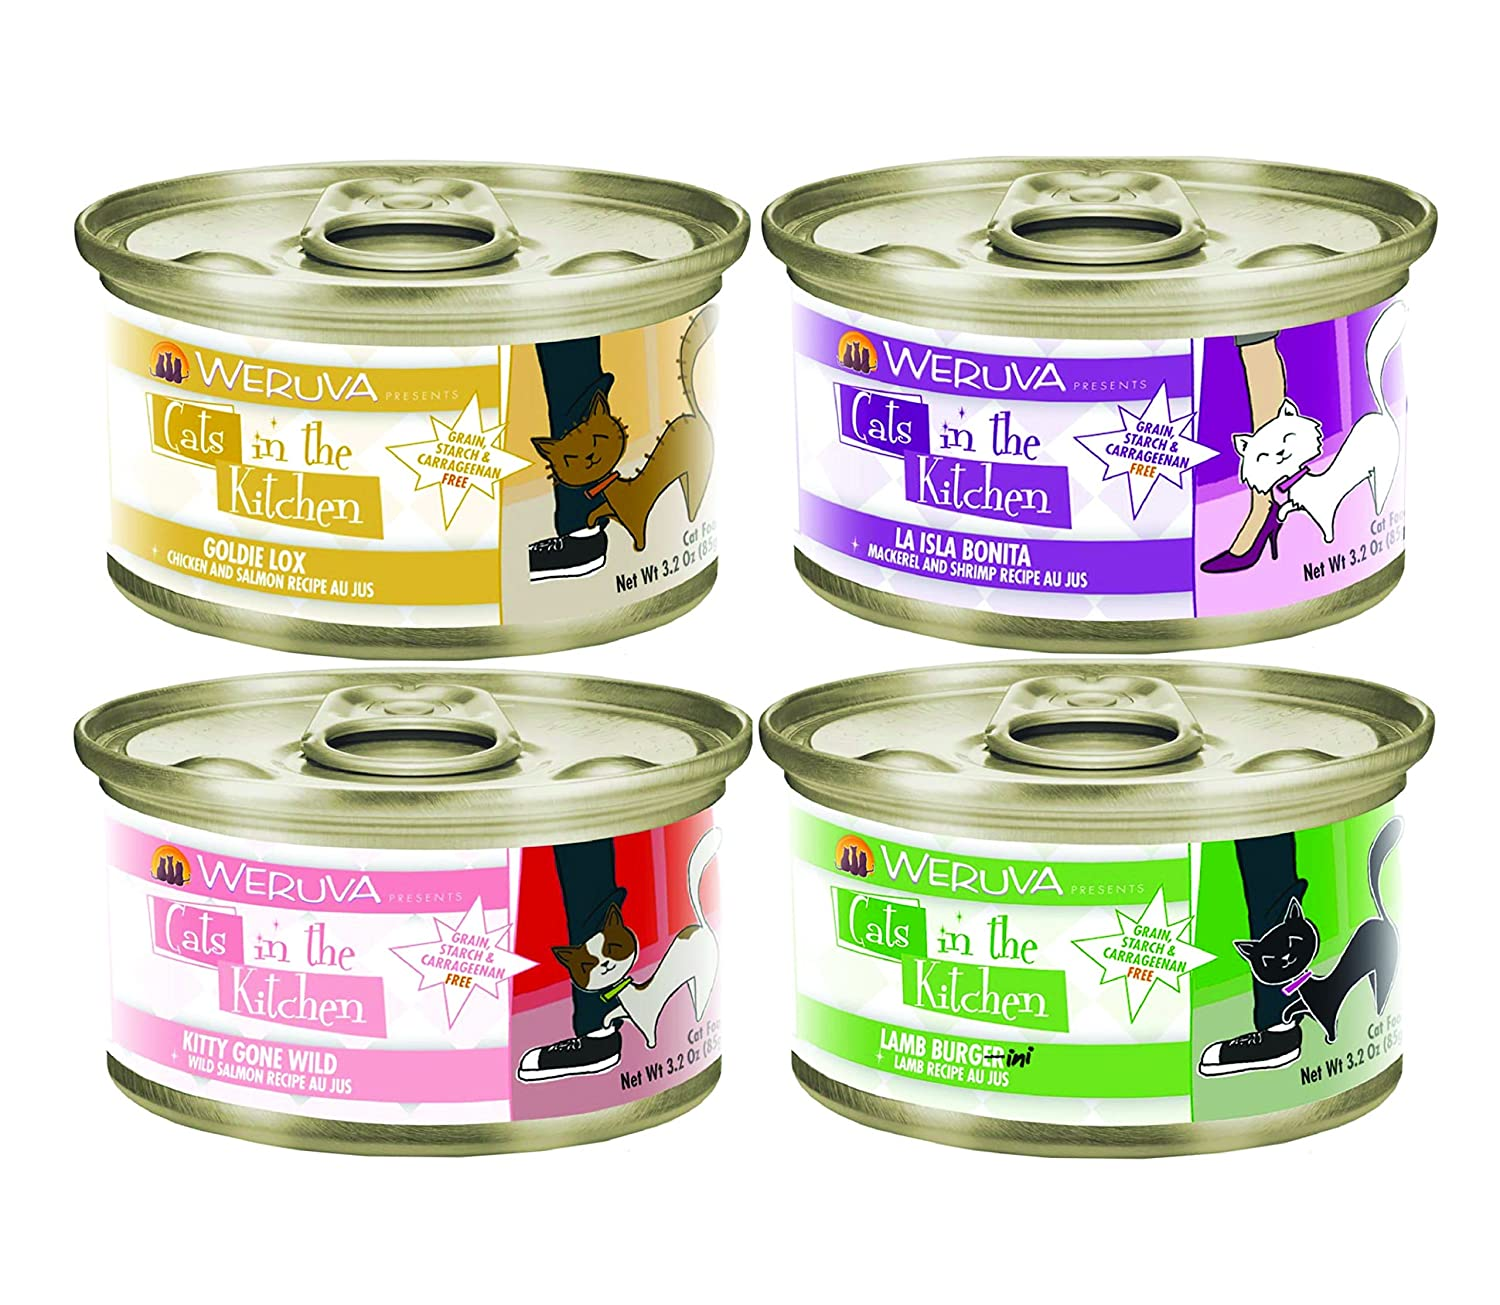 low-cost Weruva Cats in the Kitchen Canned Cat Food Mixed 3.2 oz x 24 cans with 4 Flavors – Goldie Lox, La Isla Bonita, Kitty Gone Wild, and Lamb Burgini Recipes